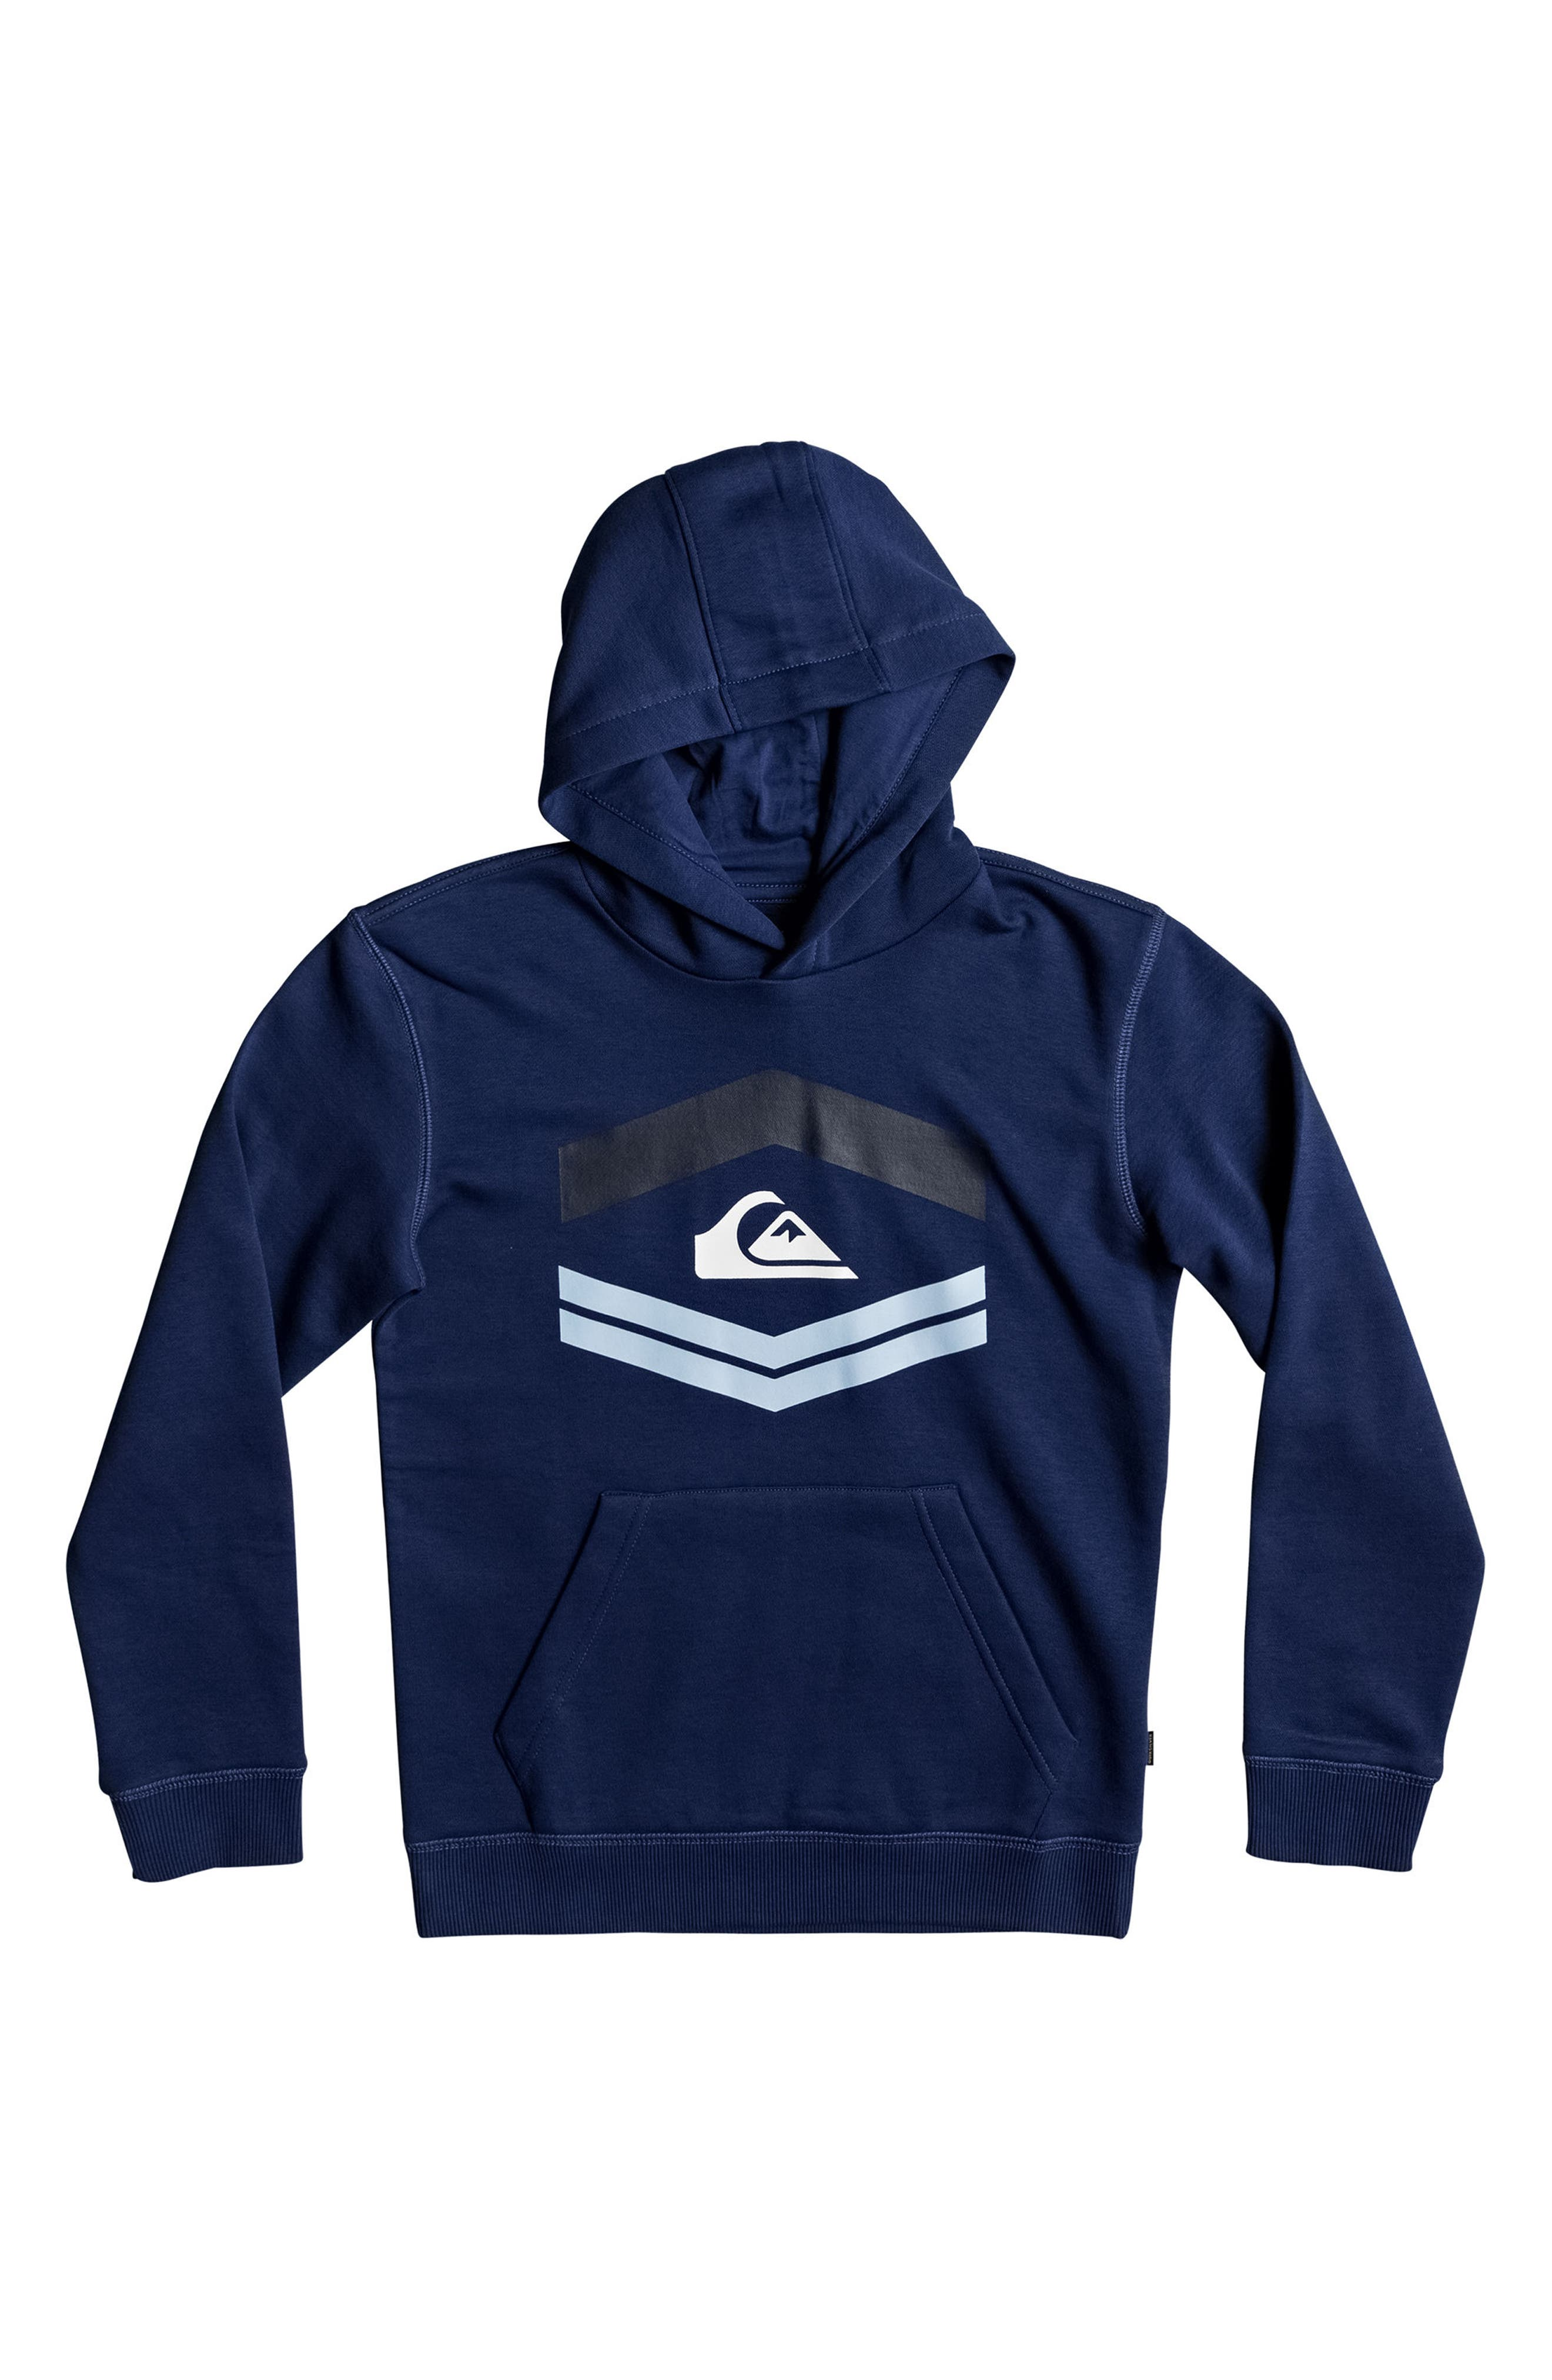 Quiksilver New Port Roca Graphic Pullover Hoodie (Big Boys)